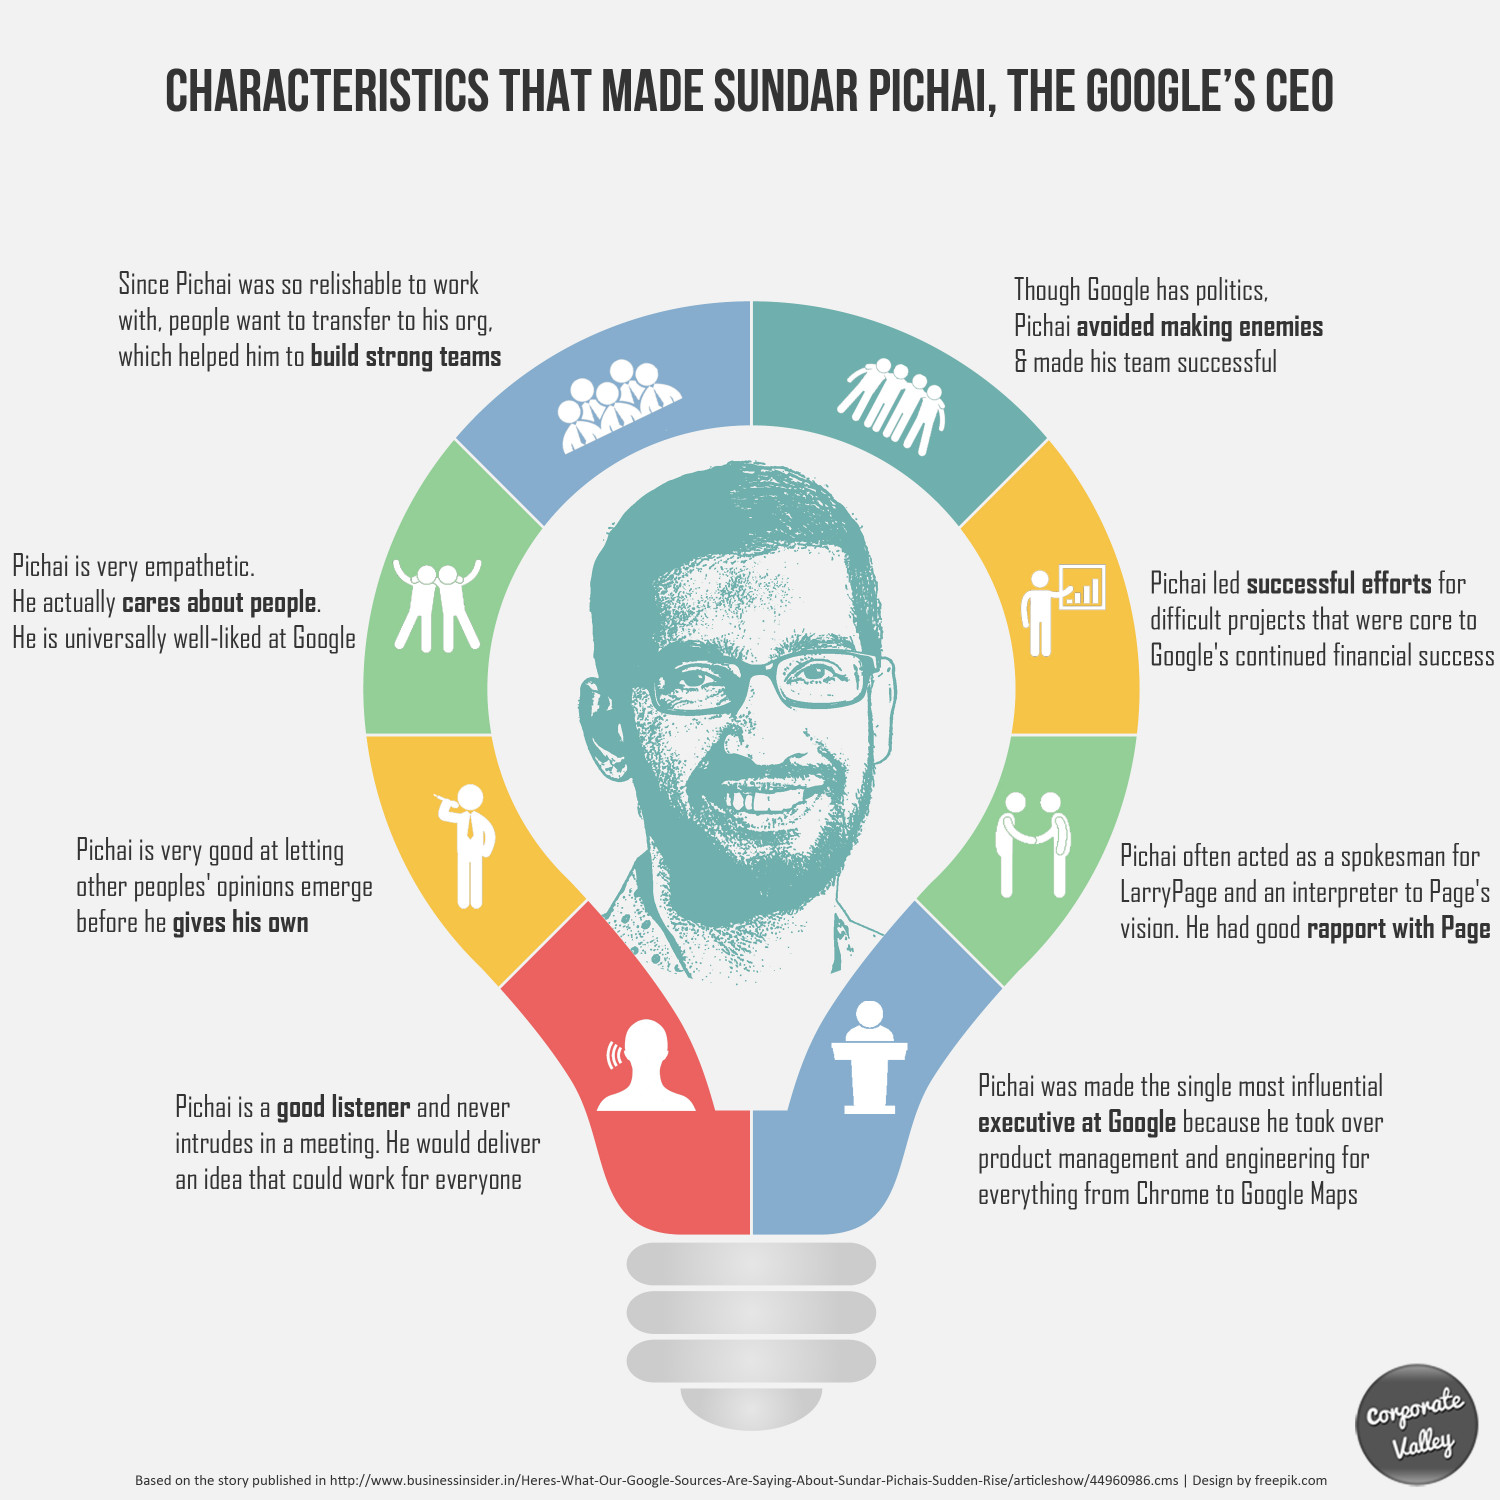 https://thumbnails-visually.netdna-ssl.com/characteristics-that-made-sundar-pichai-as-googles-ceo_55d8cbde58fc1_w1500.jpg